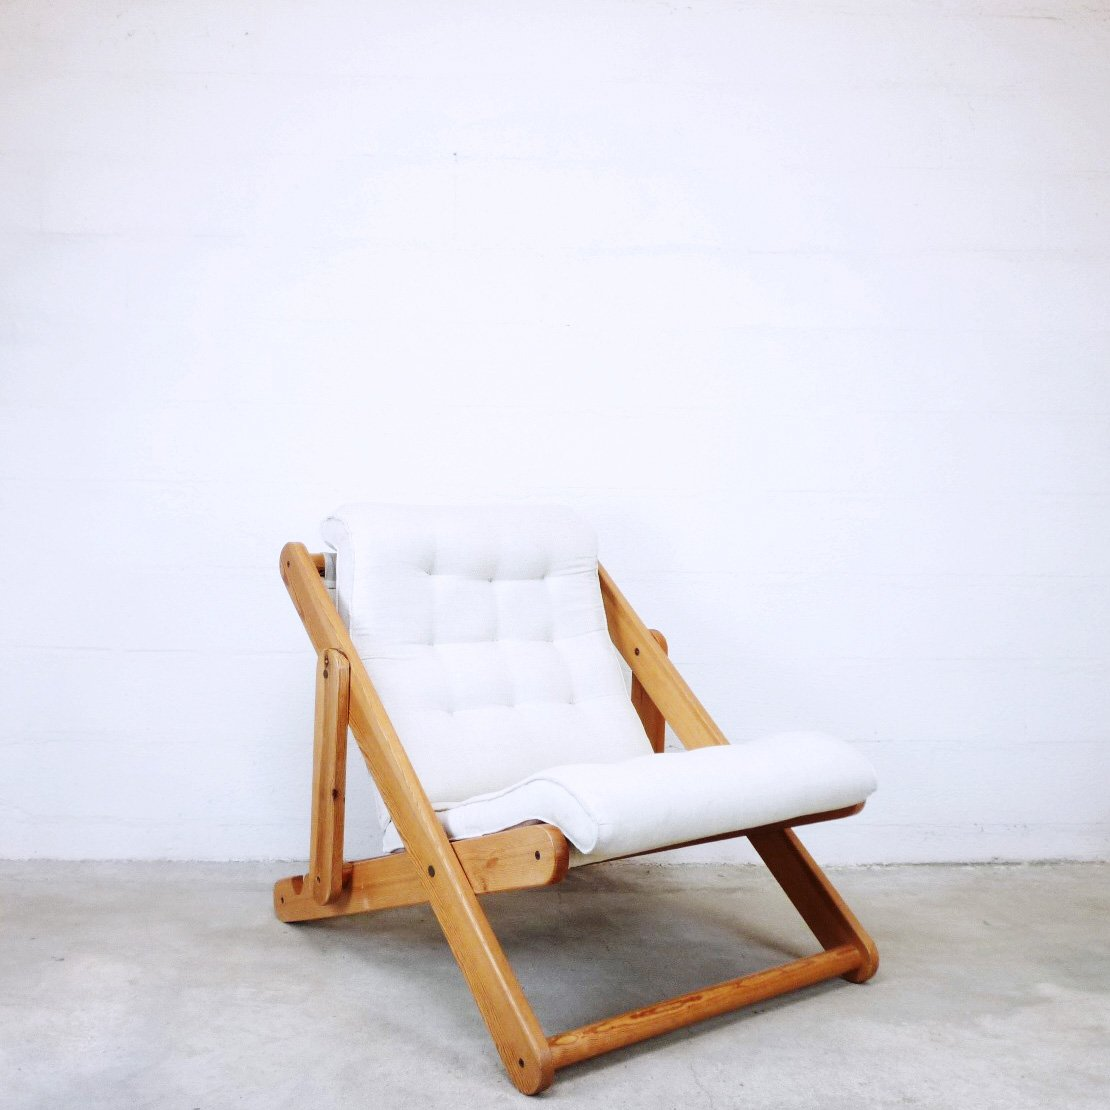 Vintage Ikea Stool Vintage Kon Tiki Lounge Chair From Ikea 1970s For Sale At